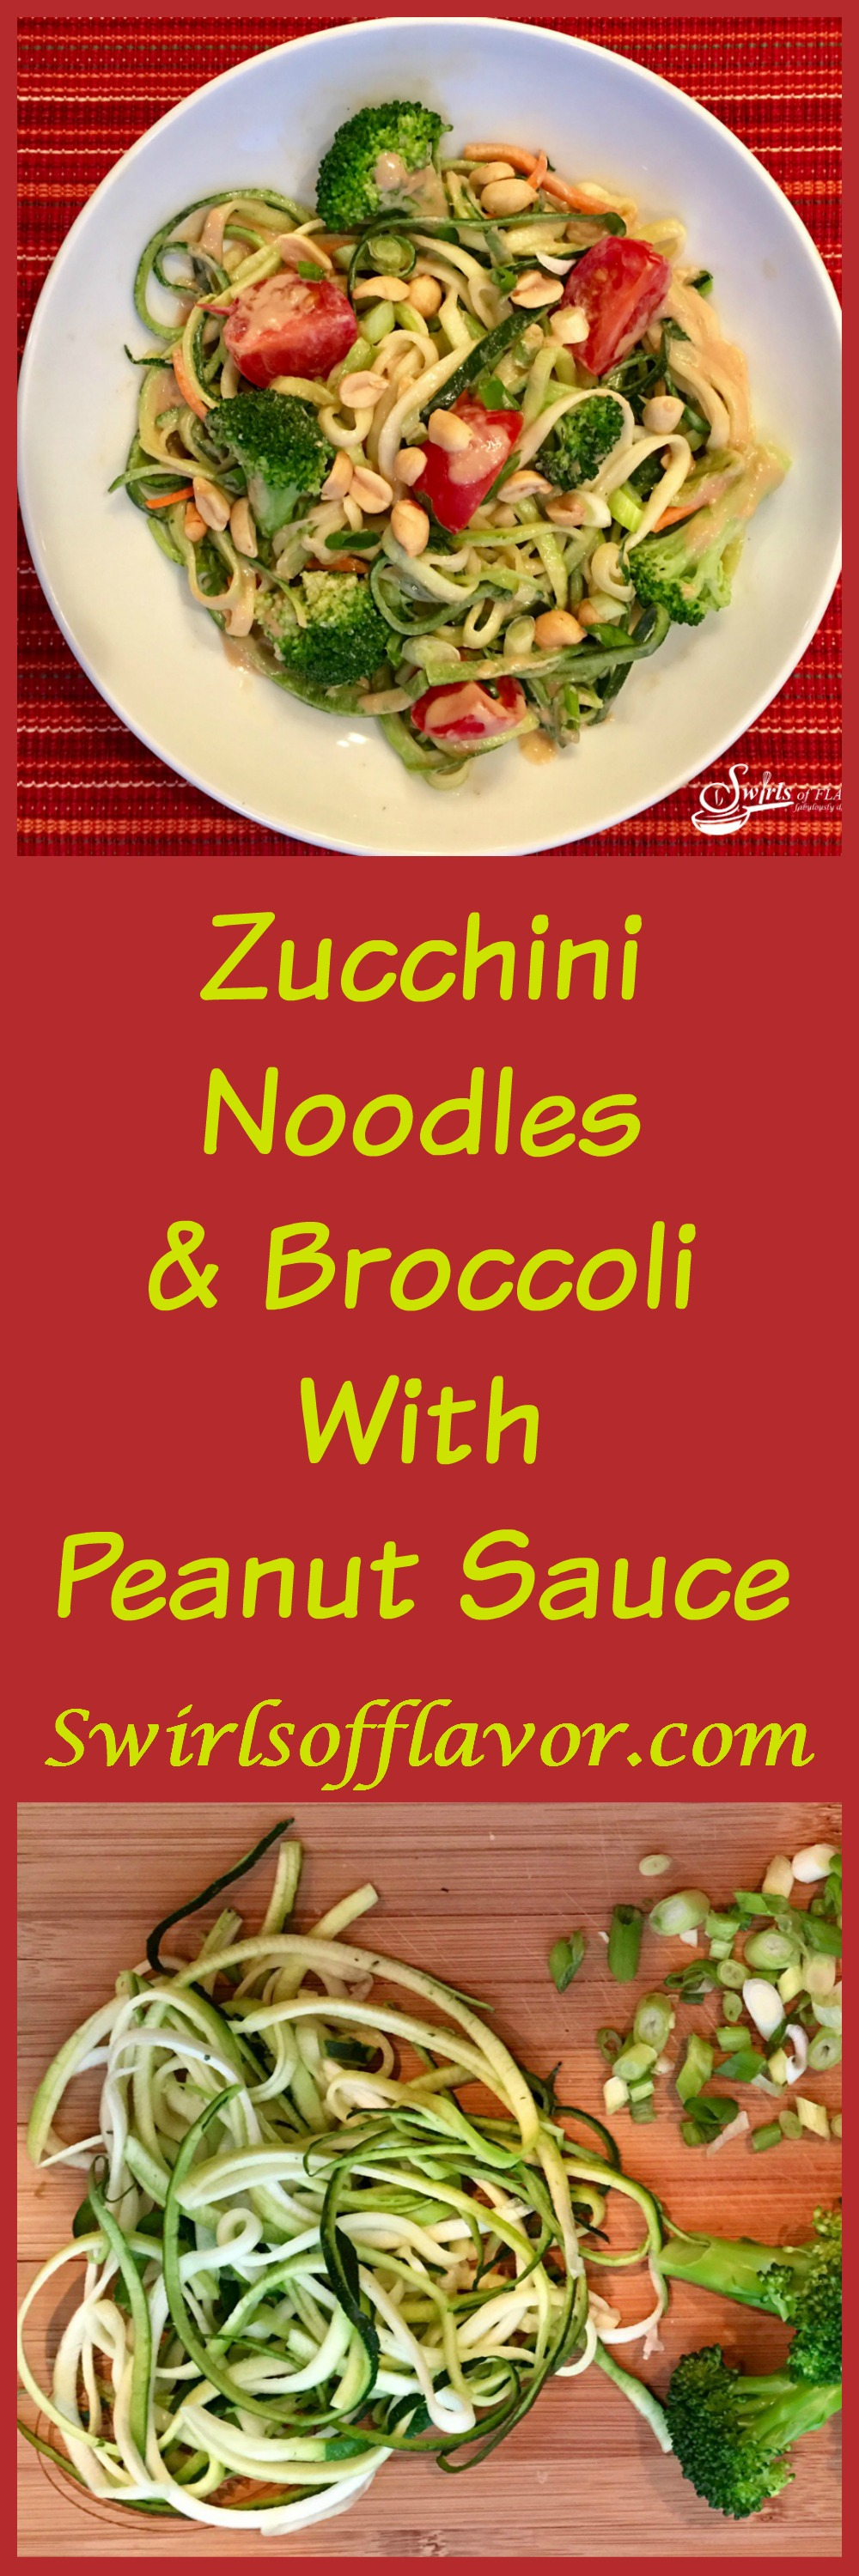 Zucchini noodles, broccoli and cherry tomatoes are coated in a silky peanut sauce and topped with crunchy scallions and peanuts! A perfect Meatless Monday dinner or side dish to your favorite meal! zucchini | zucchini noodles | zoodles | spiralizer | meatless Monday | peanut sauce | vegetables | dinner | pasta | #swirlsofflavo